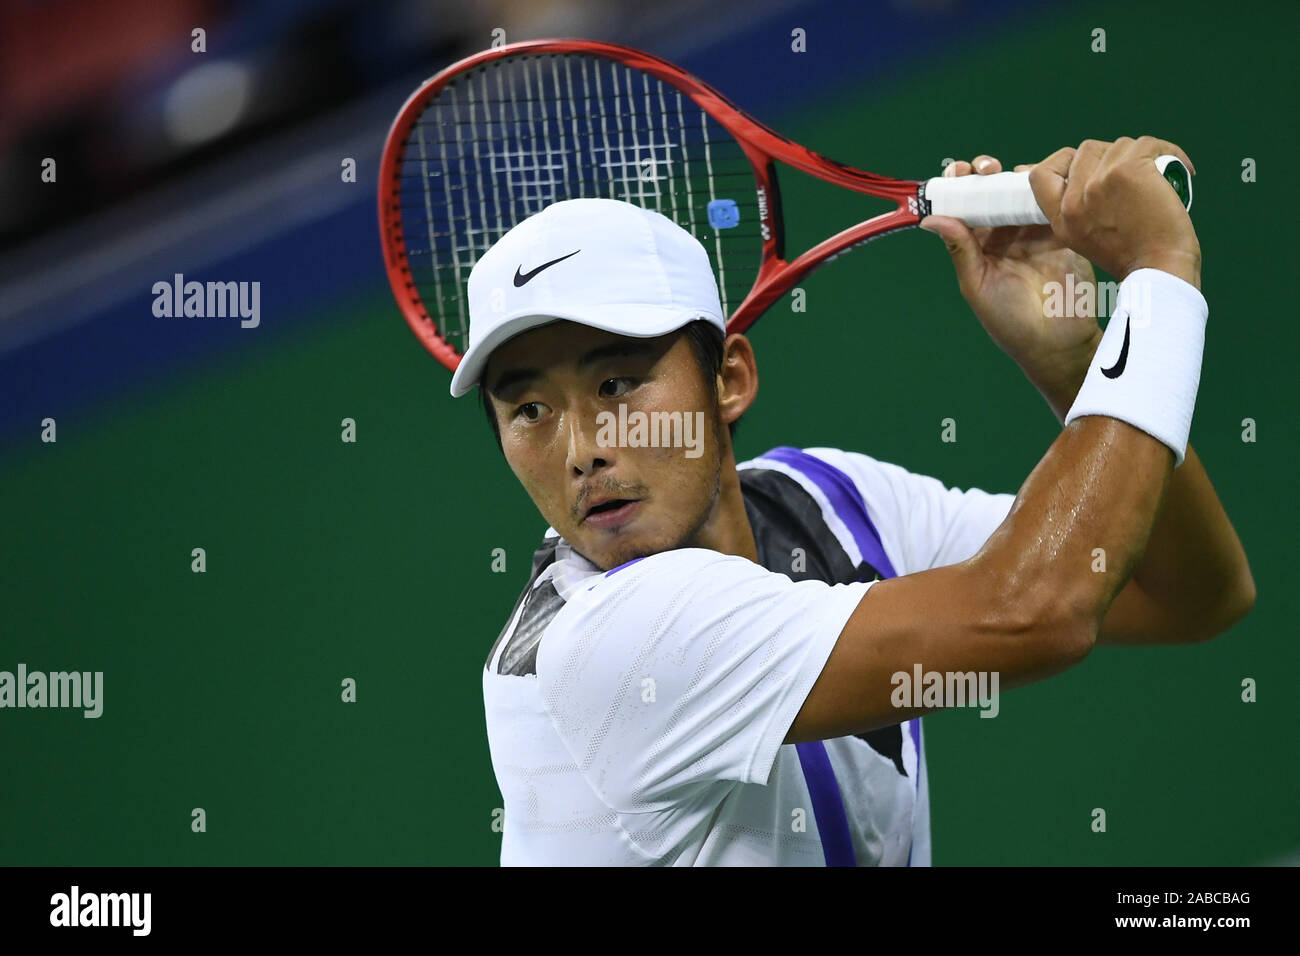 Chinese professional tennis player Zhang Ze competes against Spanish professional tennis player Pablo Carreno Busta during the first round of 2019 Rol Stock Photo